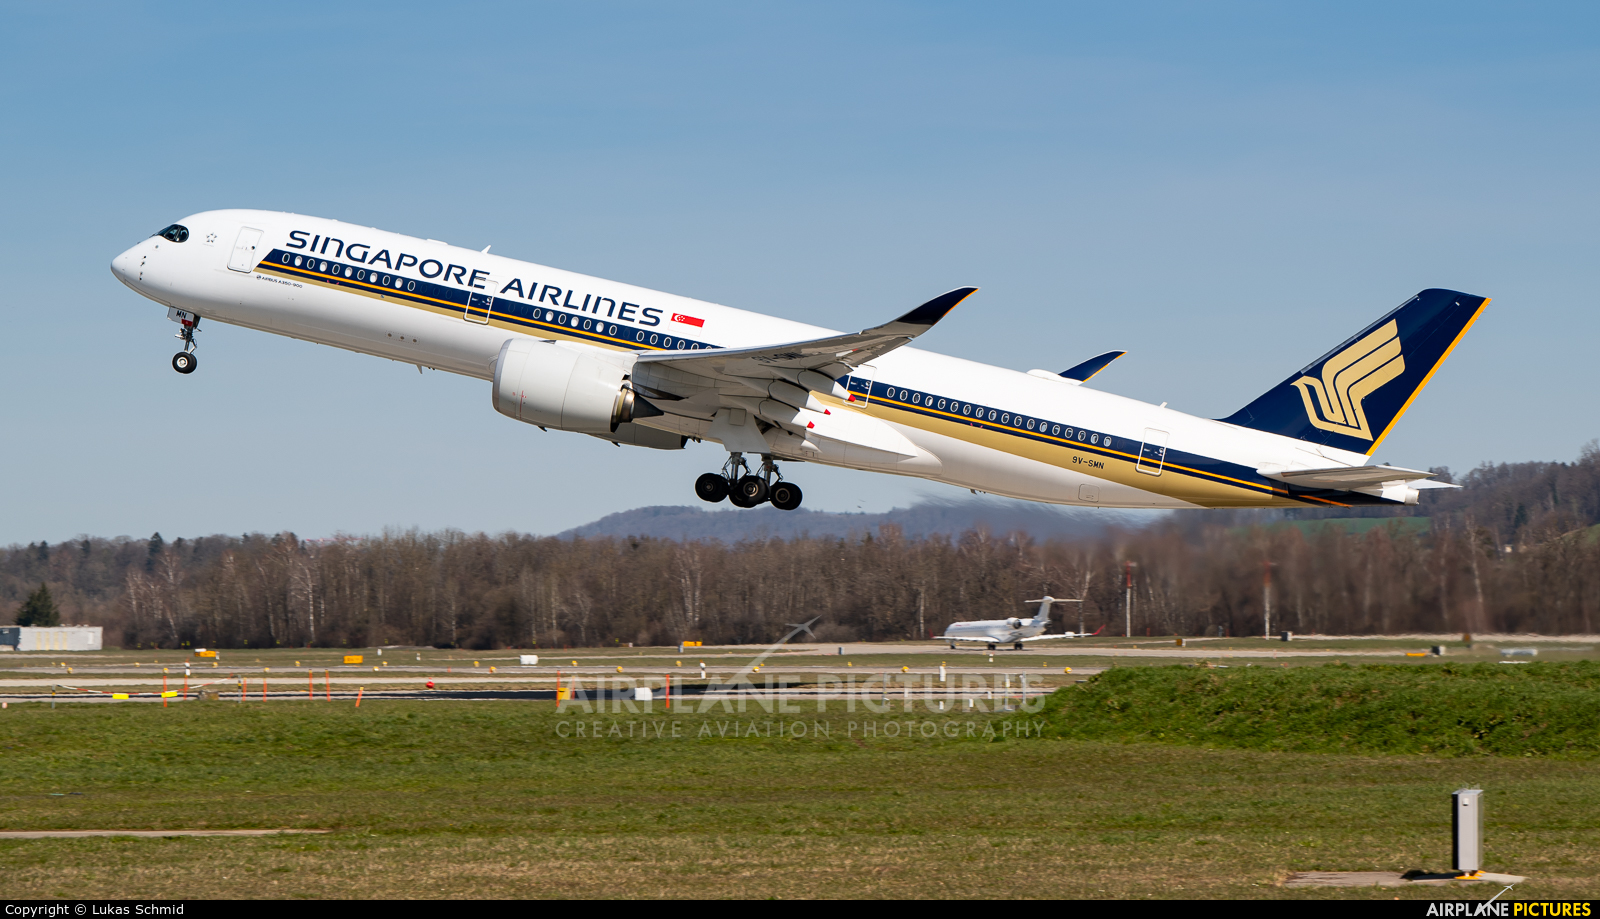 Singapore Airlines 9V-SMN aircraft at Zurich